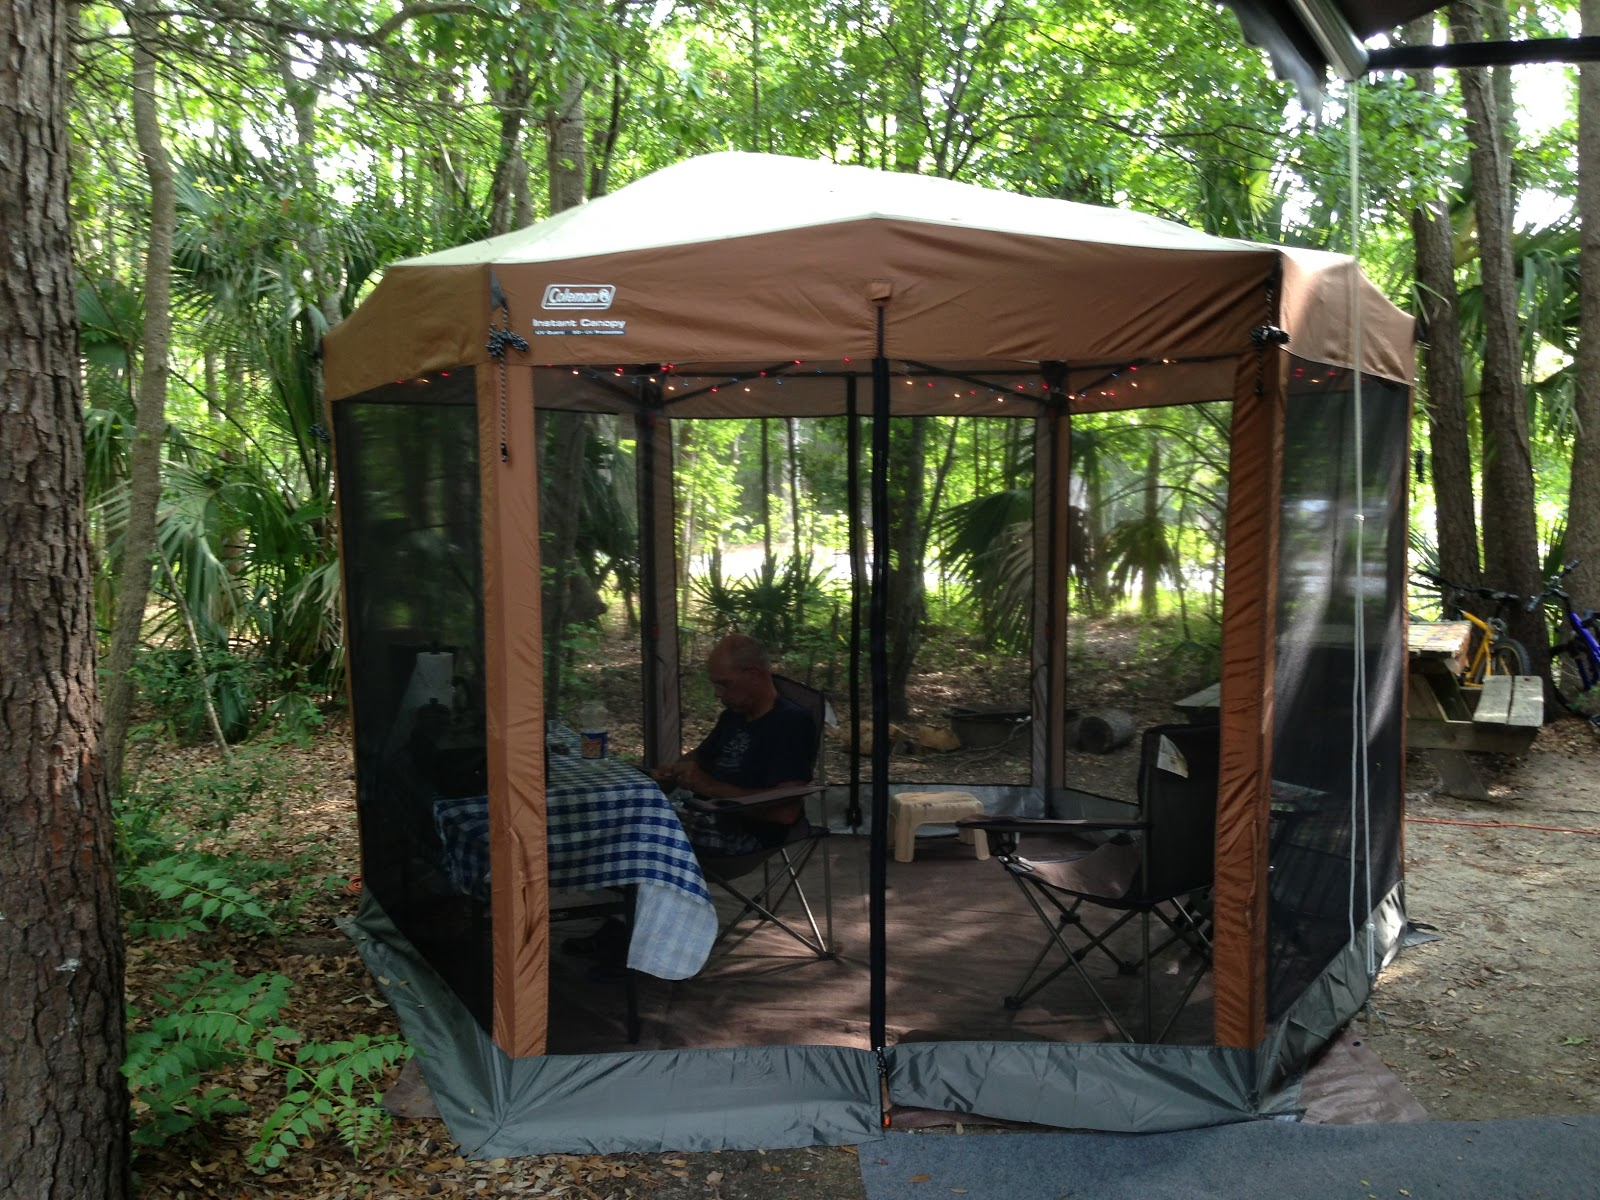 Busy Bees RV Adventures: Coleman 10x12 Screen Canopy